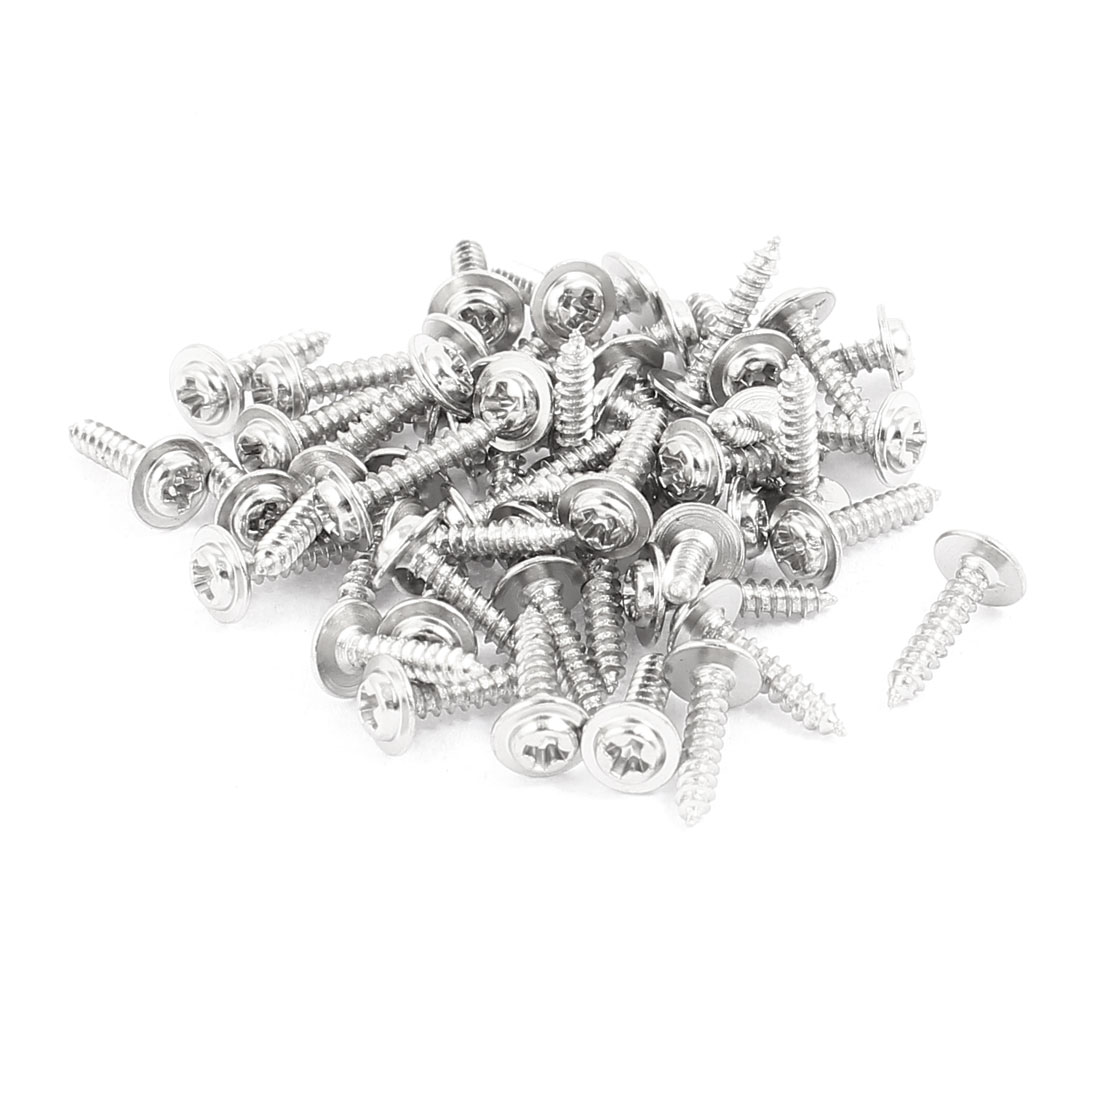 50pcs 10x2mm Stainless Steel Phillips Head Self Tapping Screw(PWA) With Washer